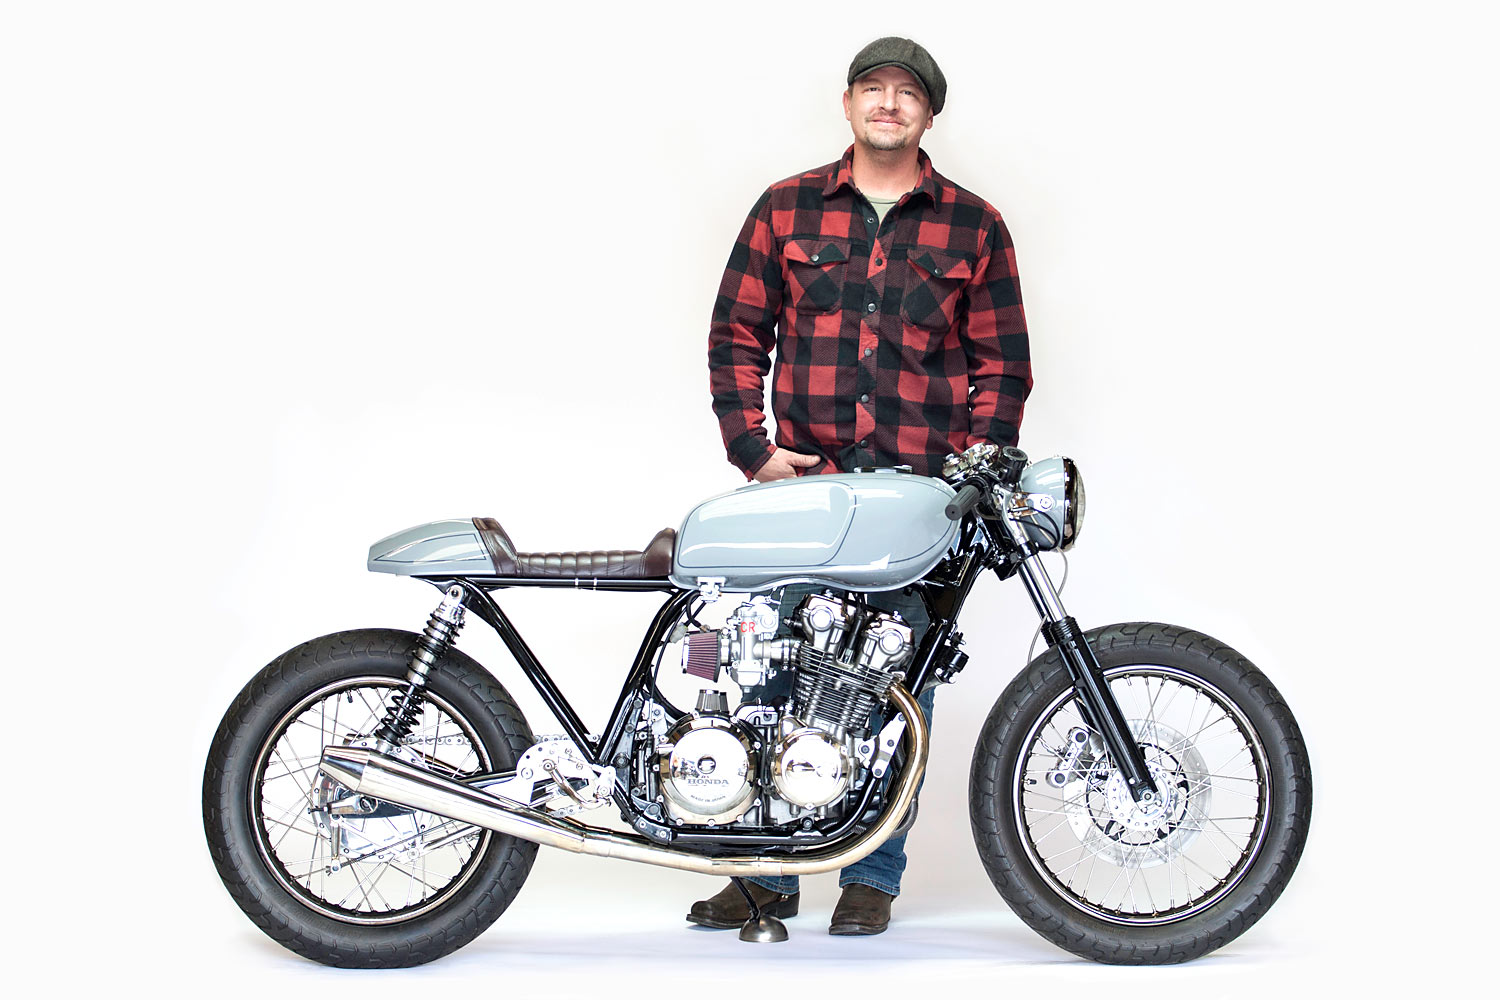 Or you can jump the queue and win it all for just $10 by heading over to their website and grabbing a raffle ticket to call this incredible Honda cafe racer ...